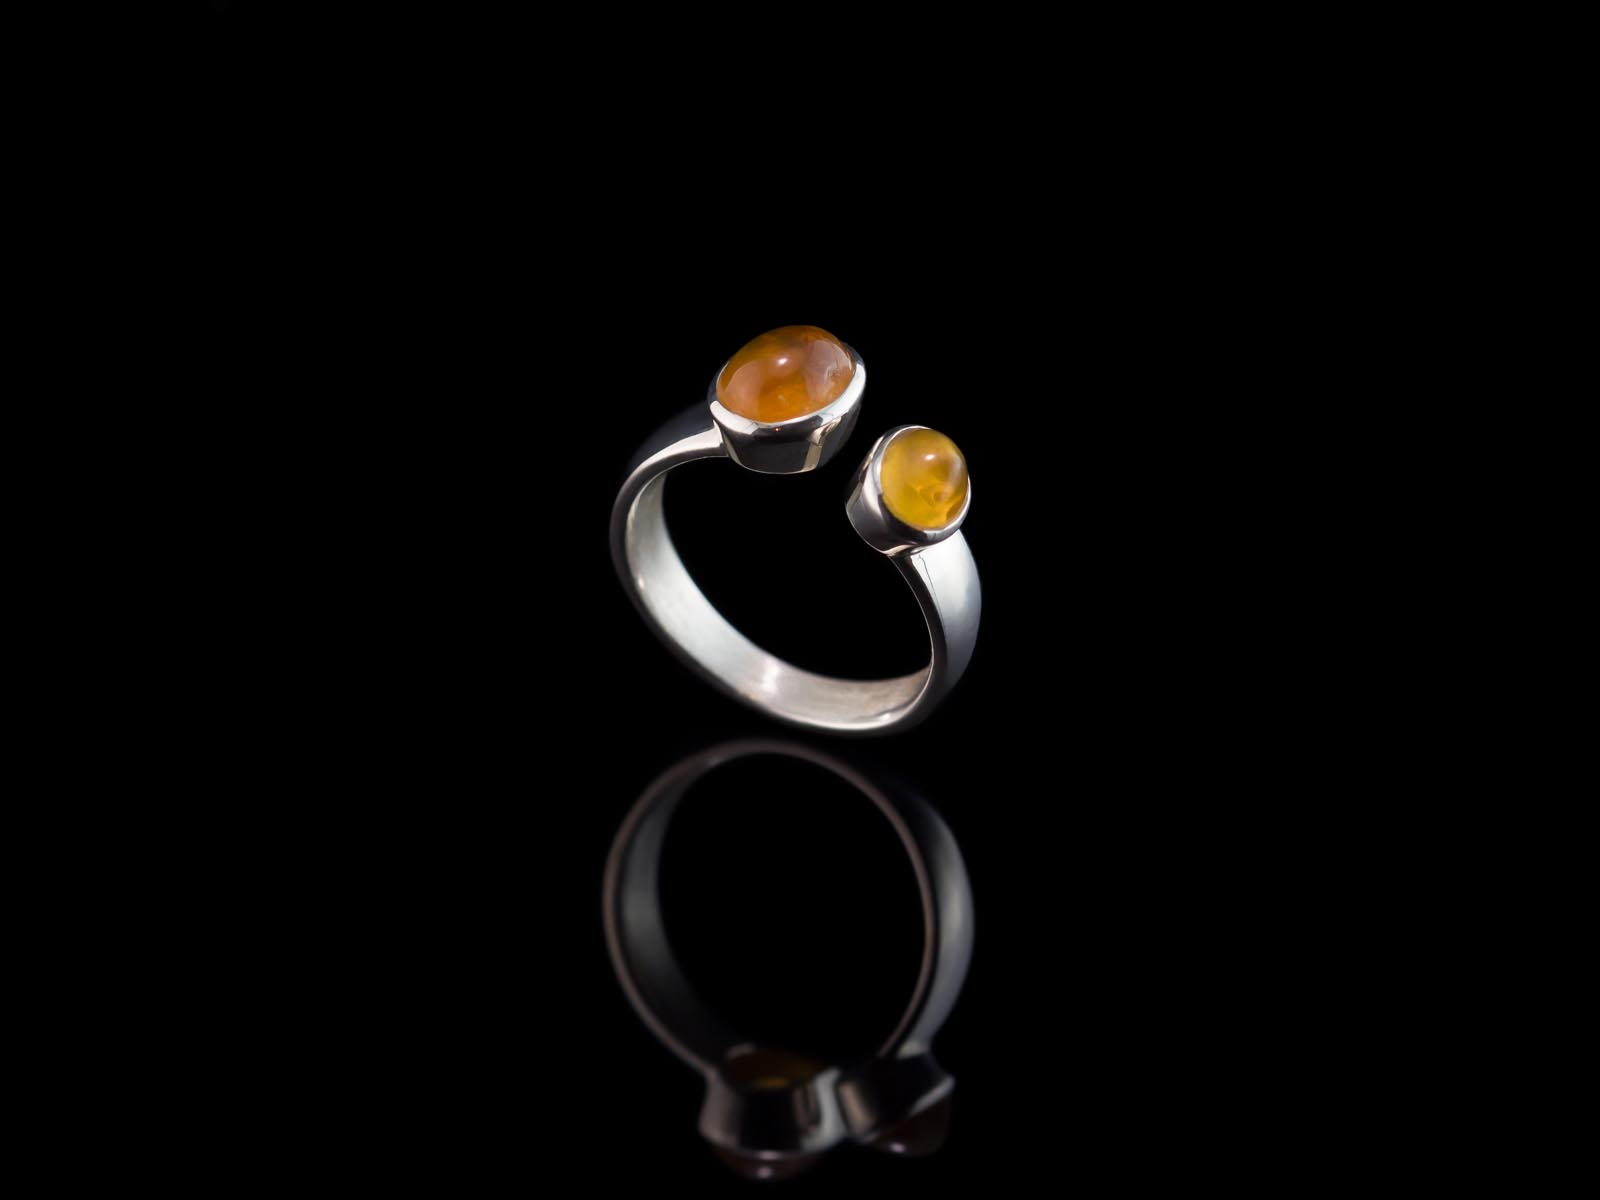 placed prong img measures size antique mandarin centrally a rings this gold ring flanked that elegant by set estate in vintage black features sapphire star fine yellow very scroll oval approx cut cabochon